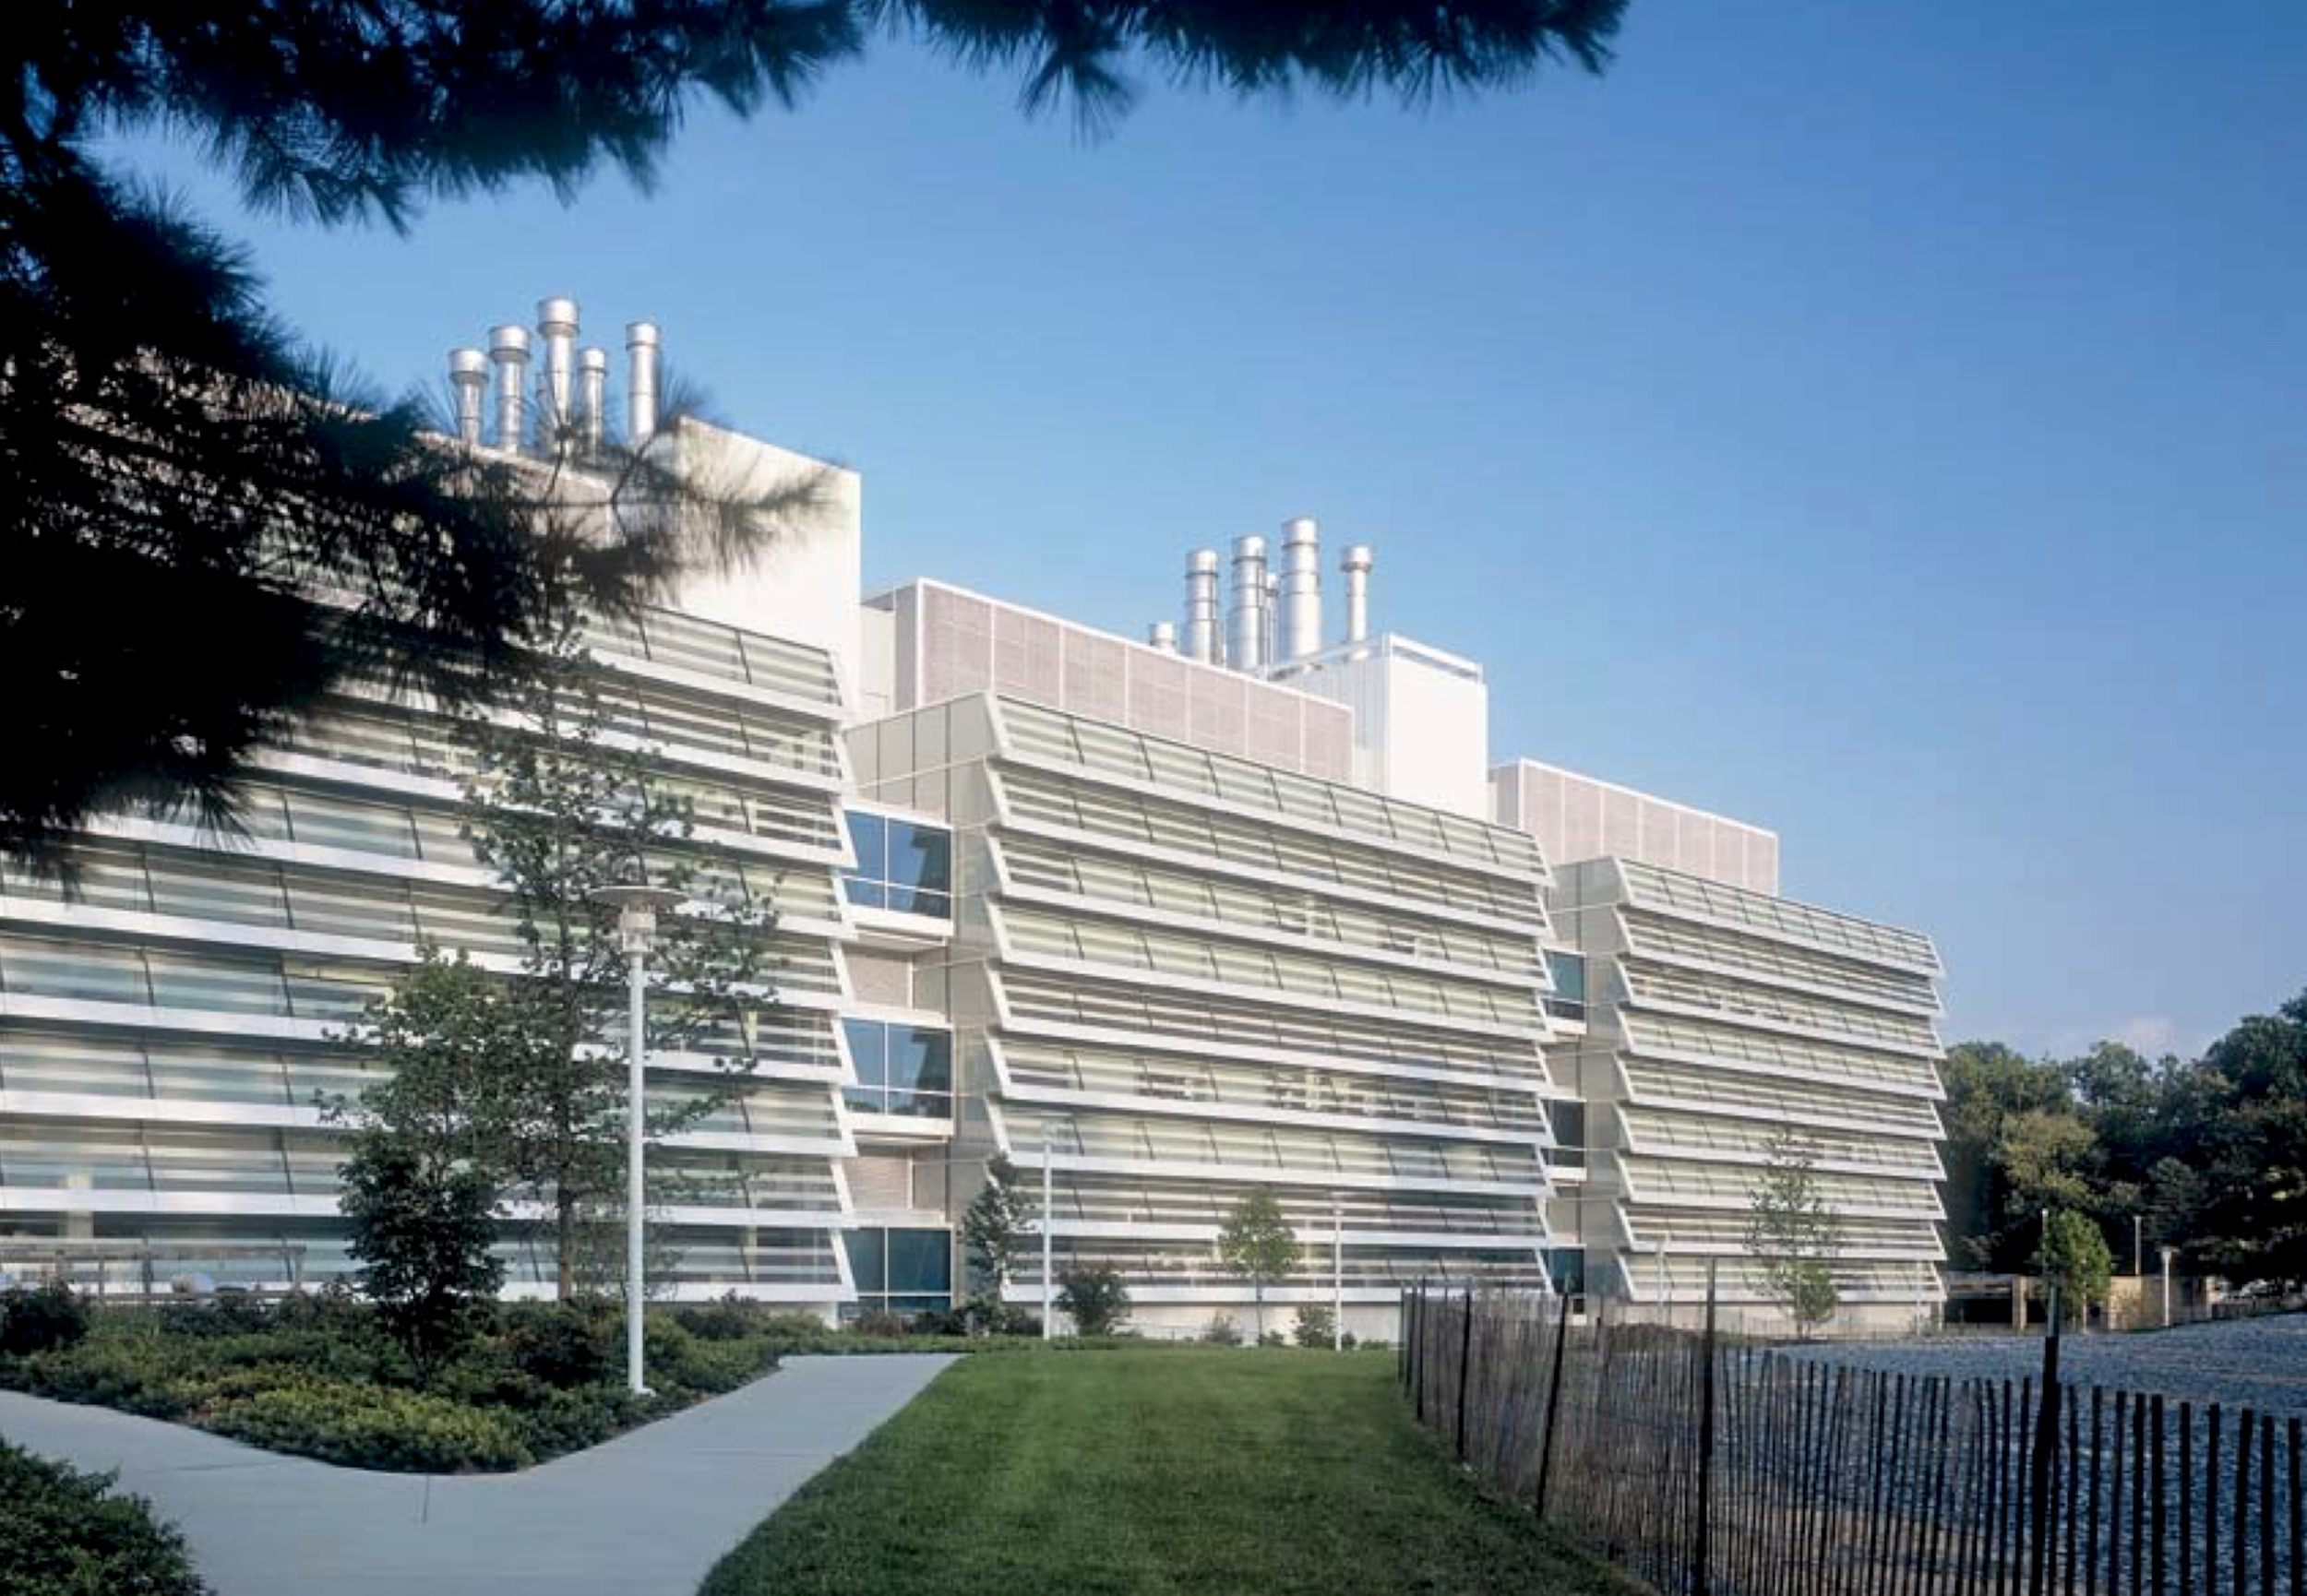 Porter Neuroscience Research Center at NIH, Bethesda, MD*